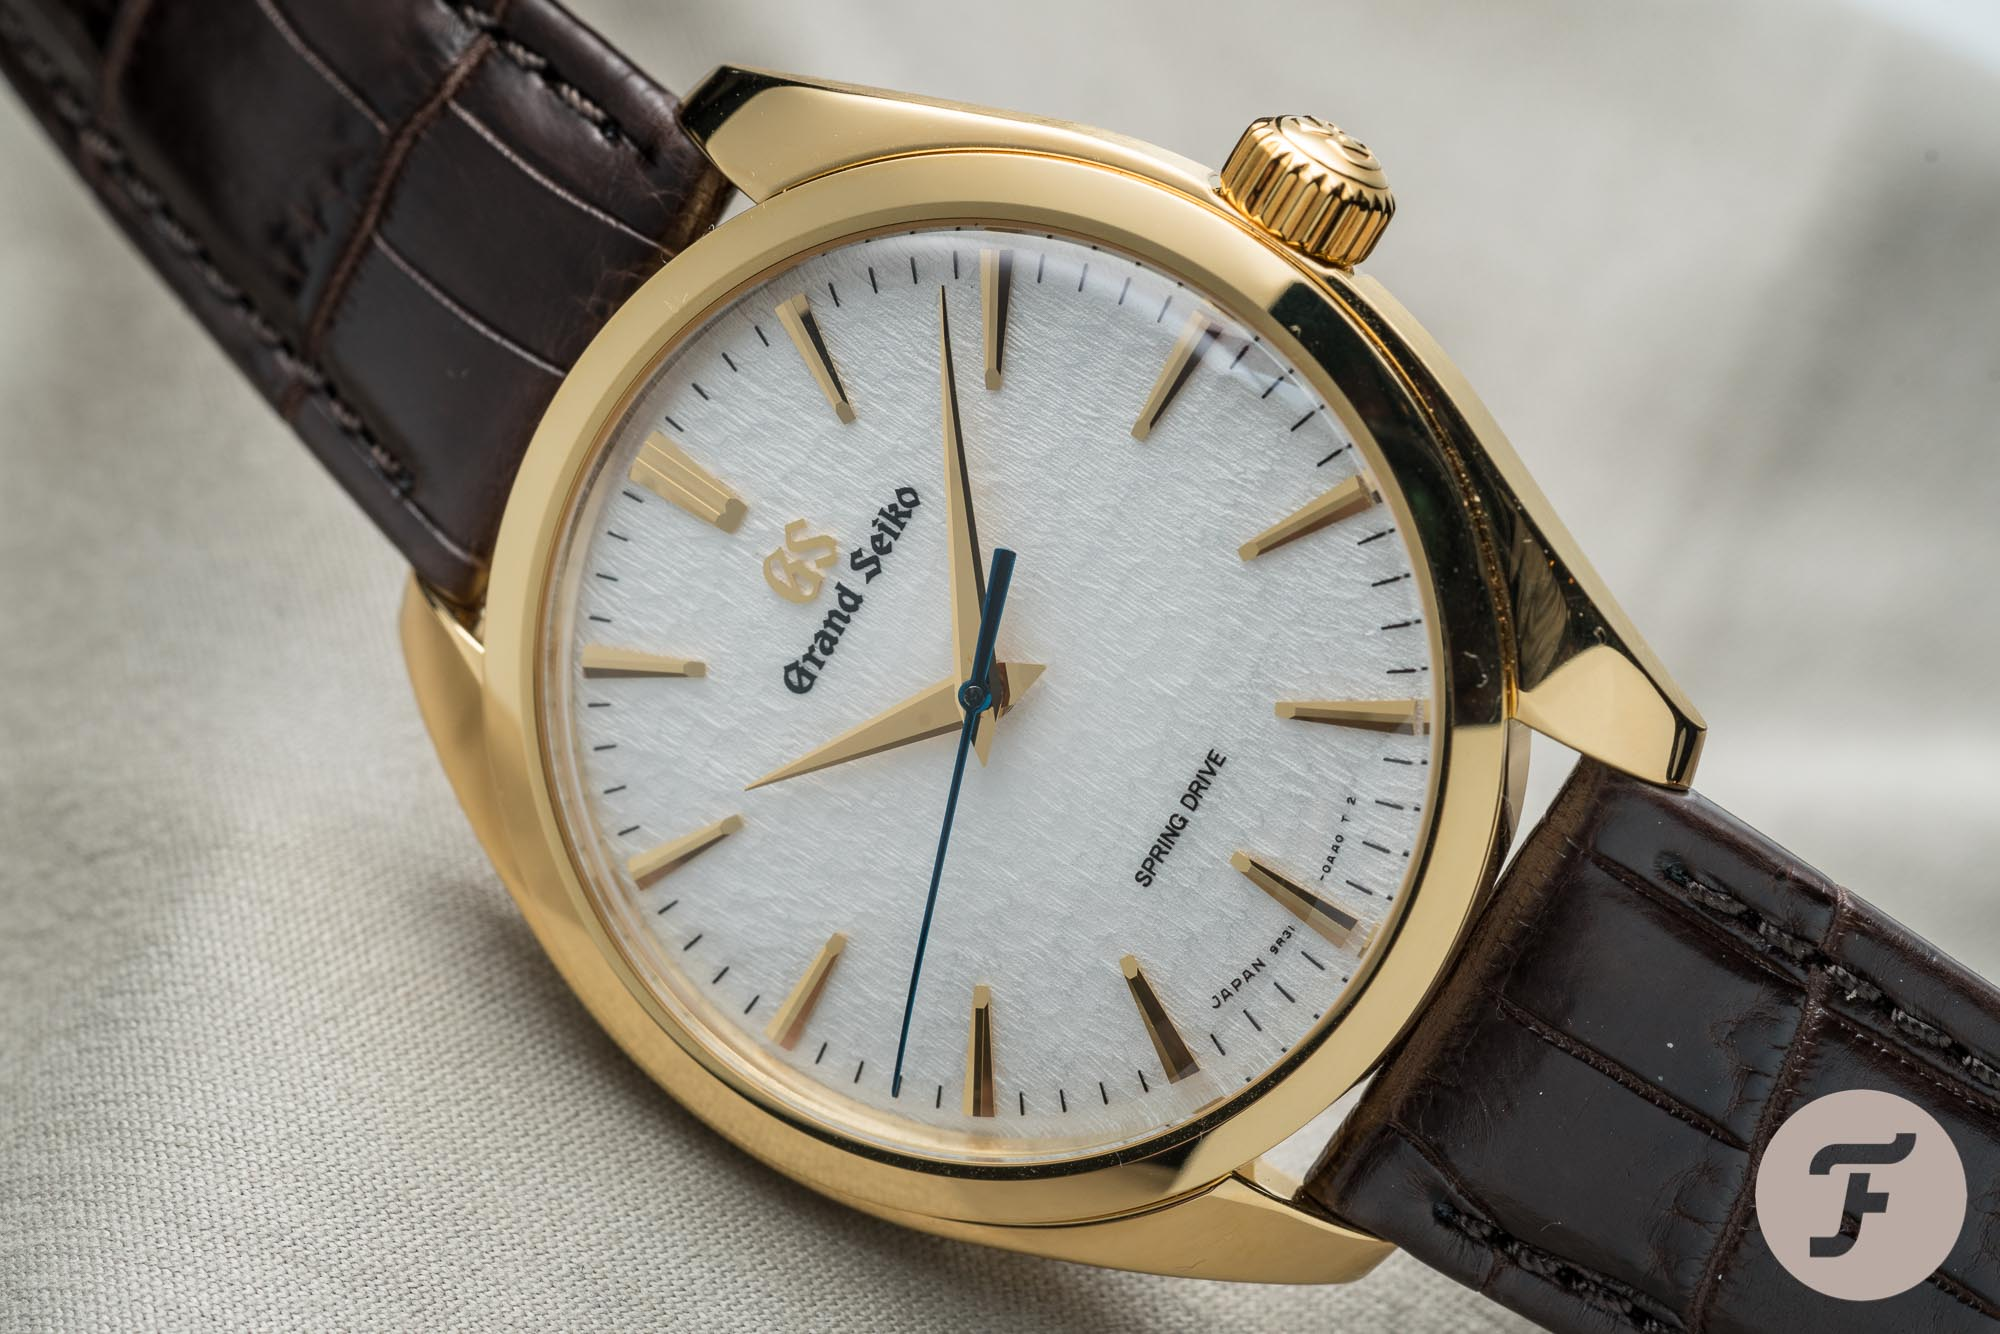 Grand Seiko Spring Drive SBGY002 Top 10 Dress Watches